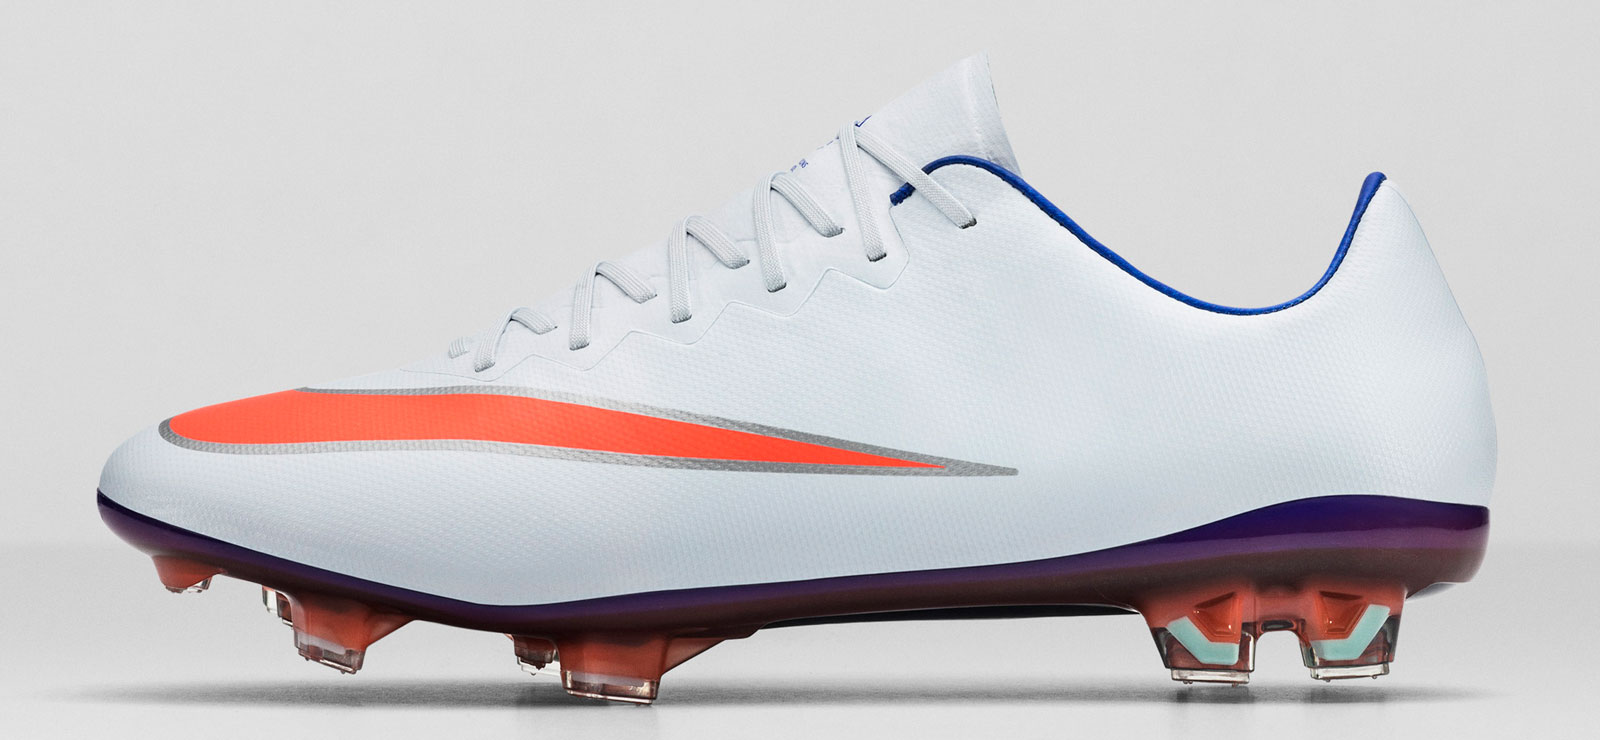 Ronaldo Galaxy Boots | DigiBless